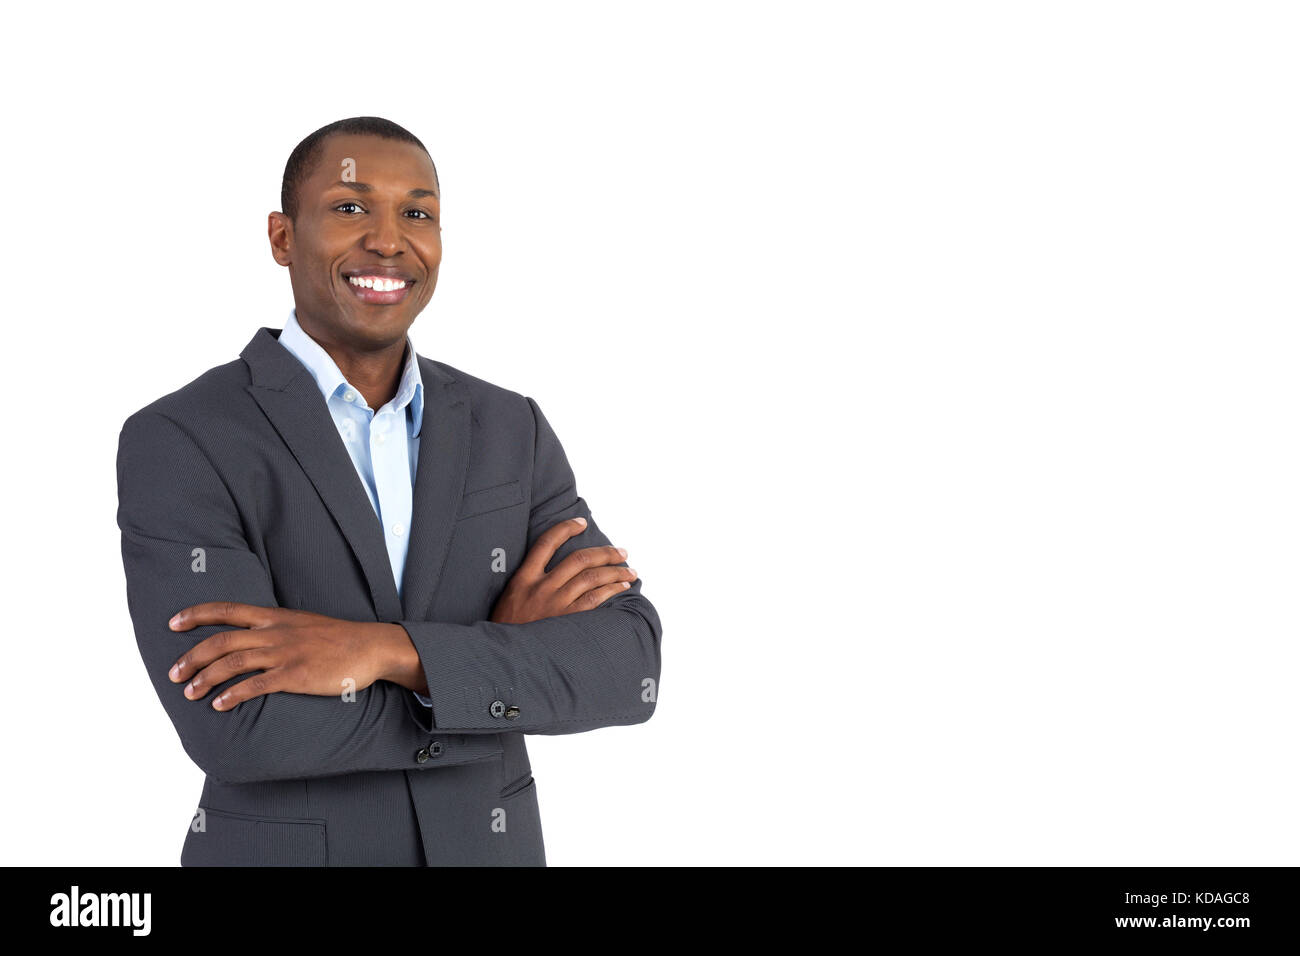 Handsome African American businessman - Stock Image